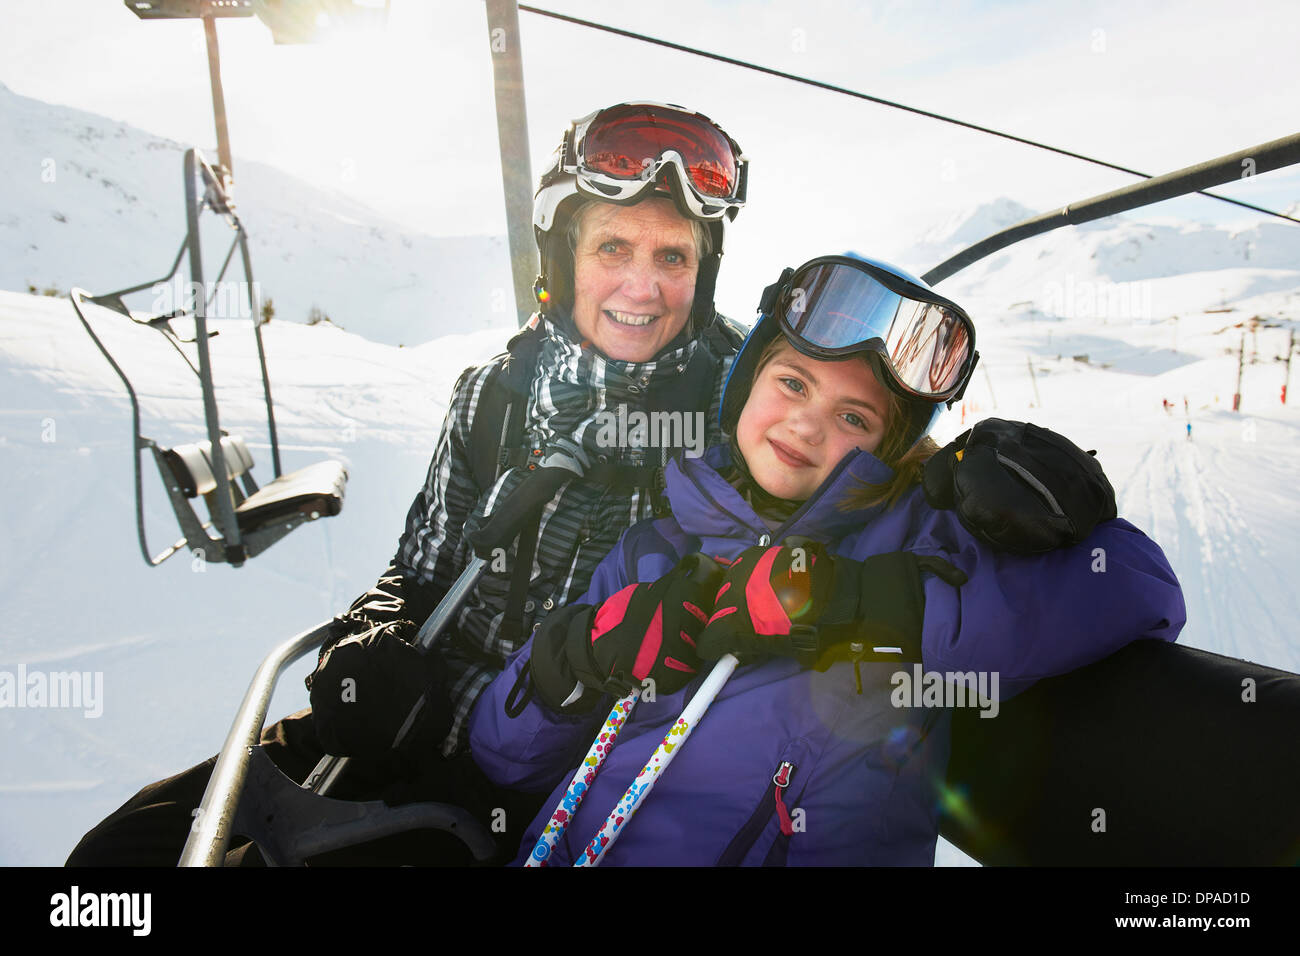 Portrait of grandmother and granddaughter on ski lift, Les Arcs, Haute-Savoie, France - Stock Image